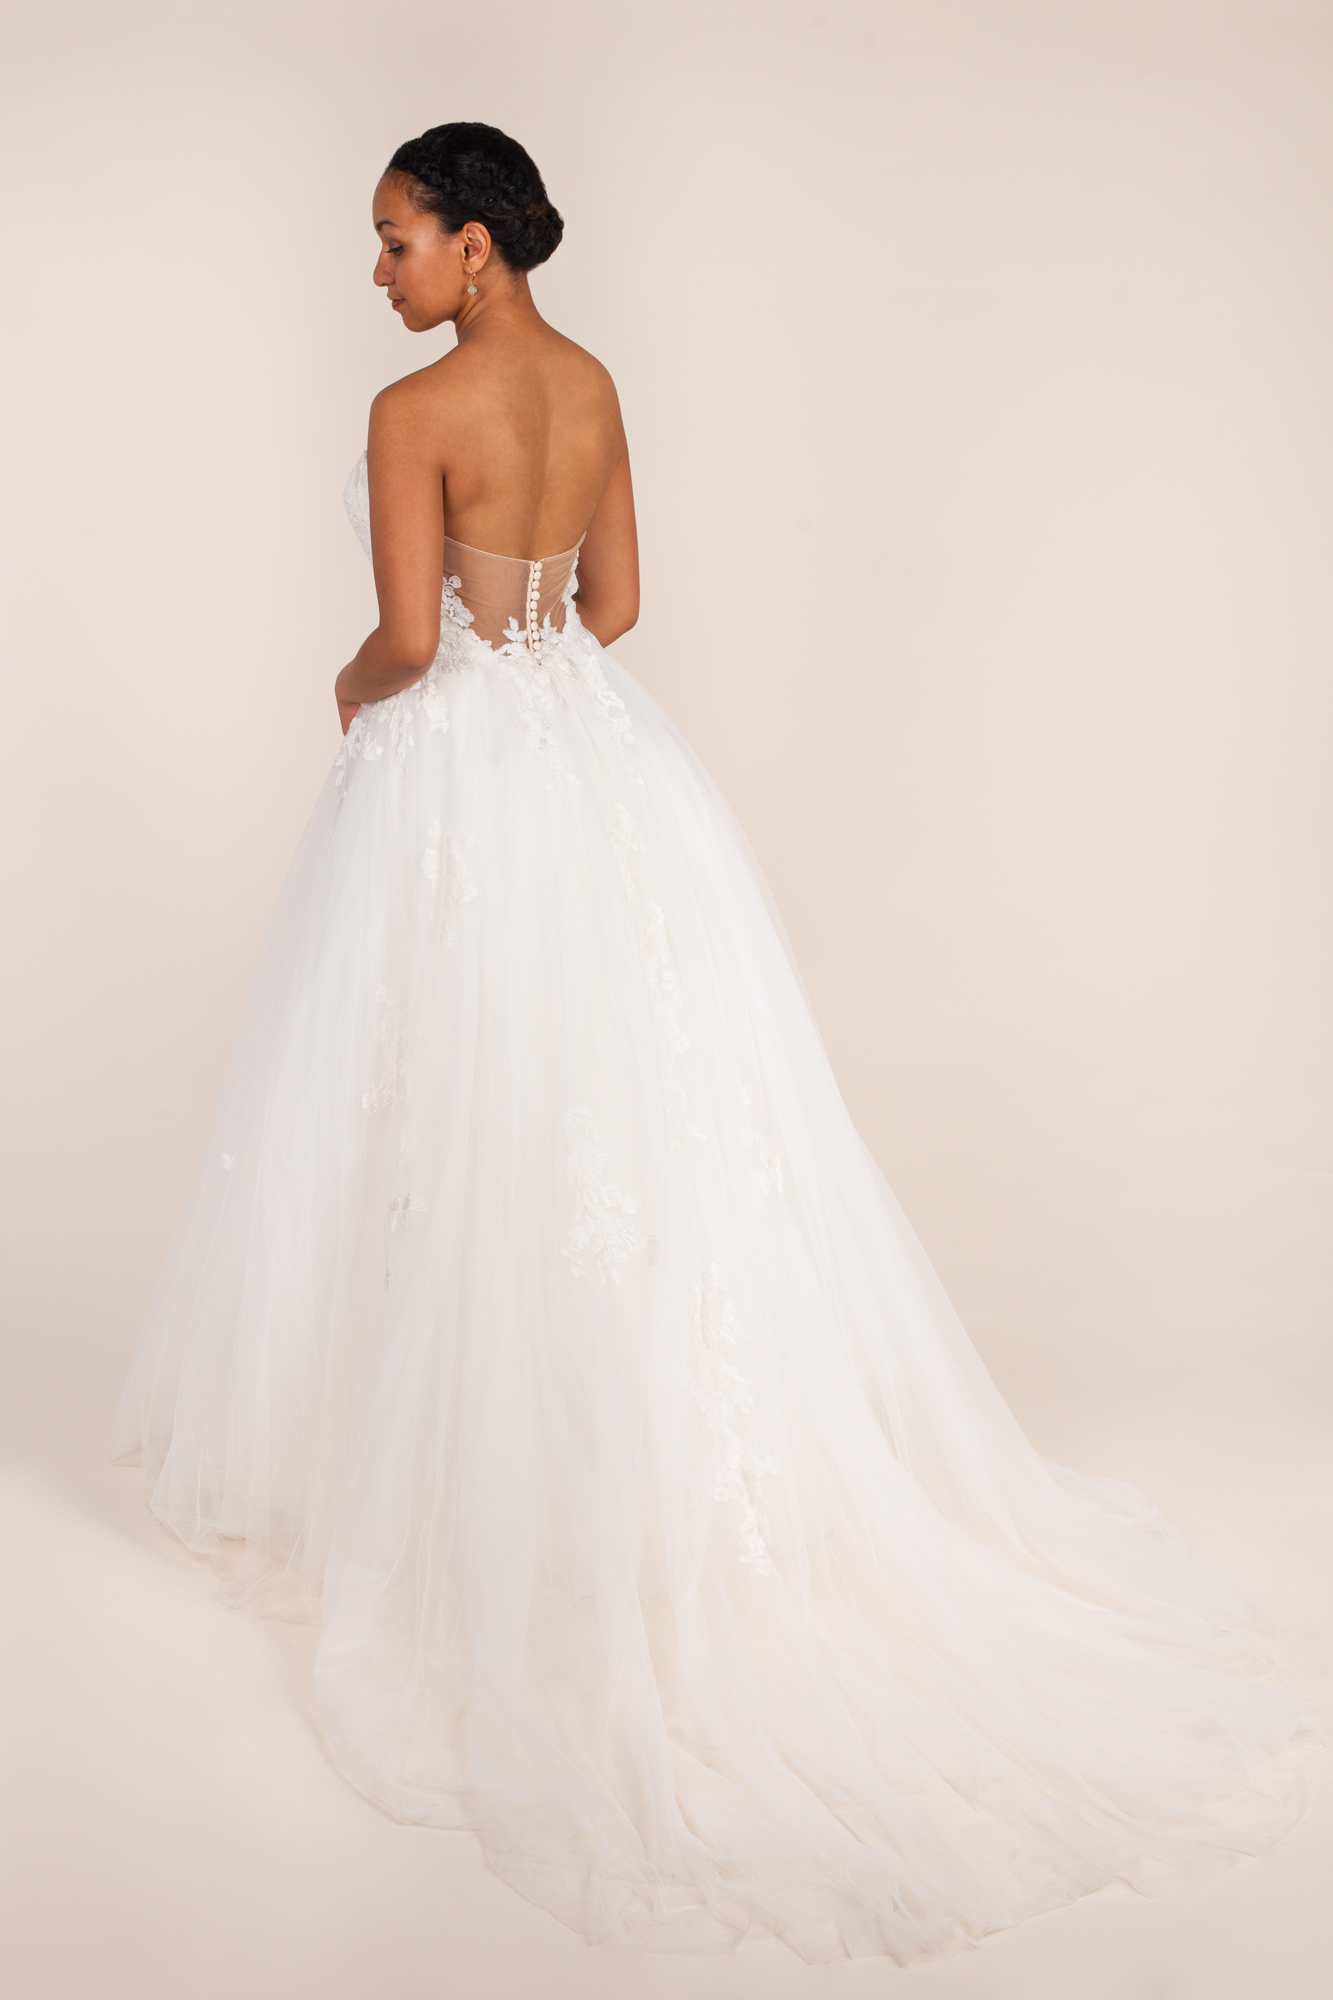 Monique lhuillier - Bliss BL 17106 size  - $2300 - (43% OFF)